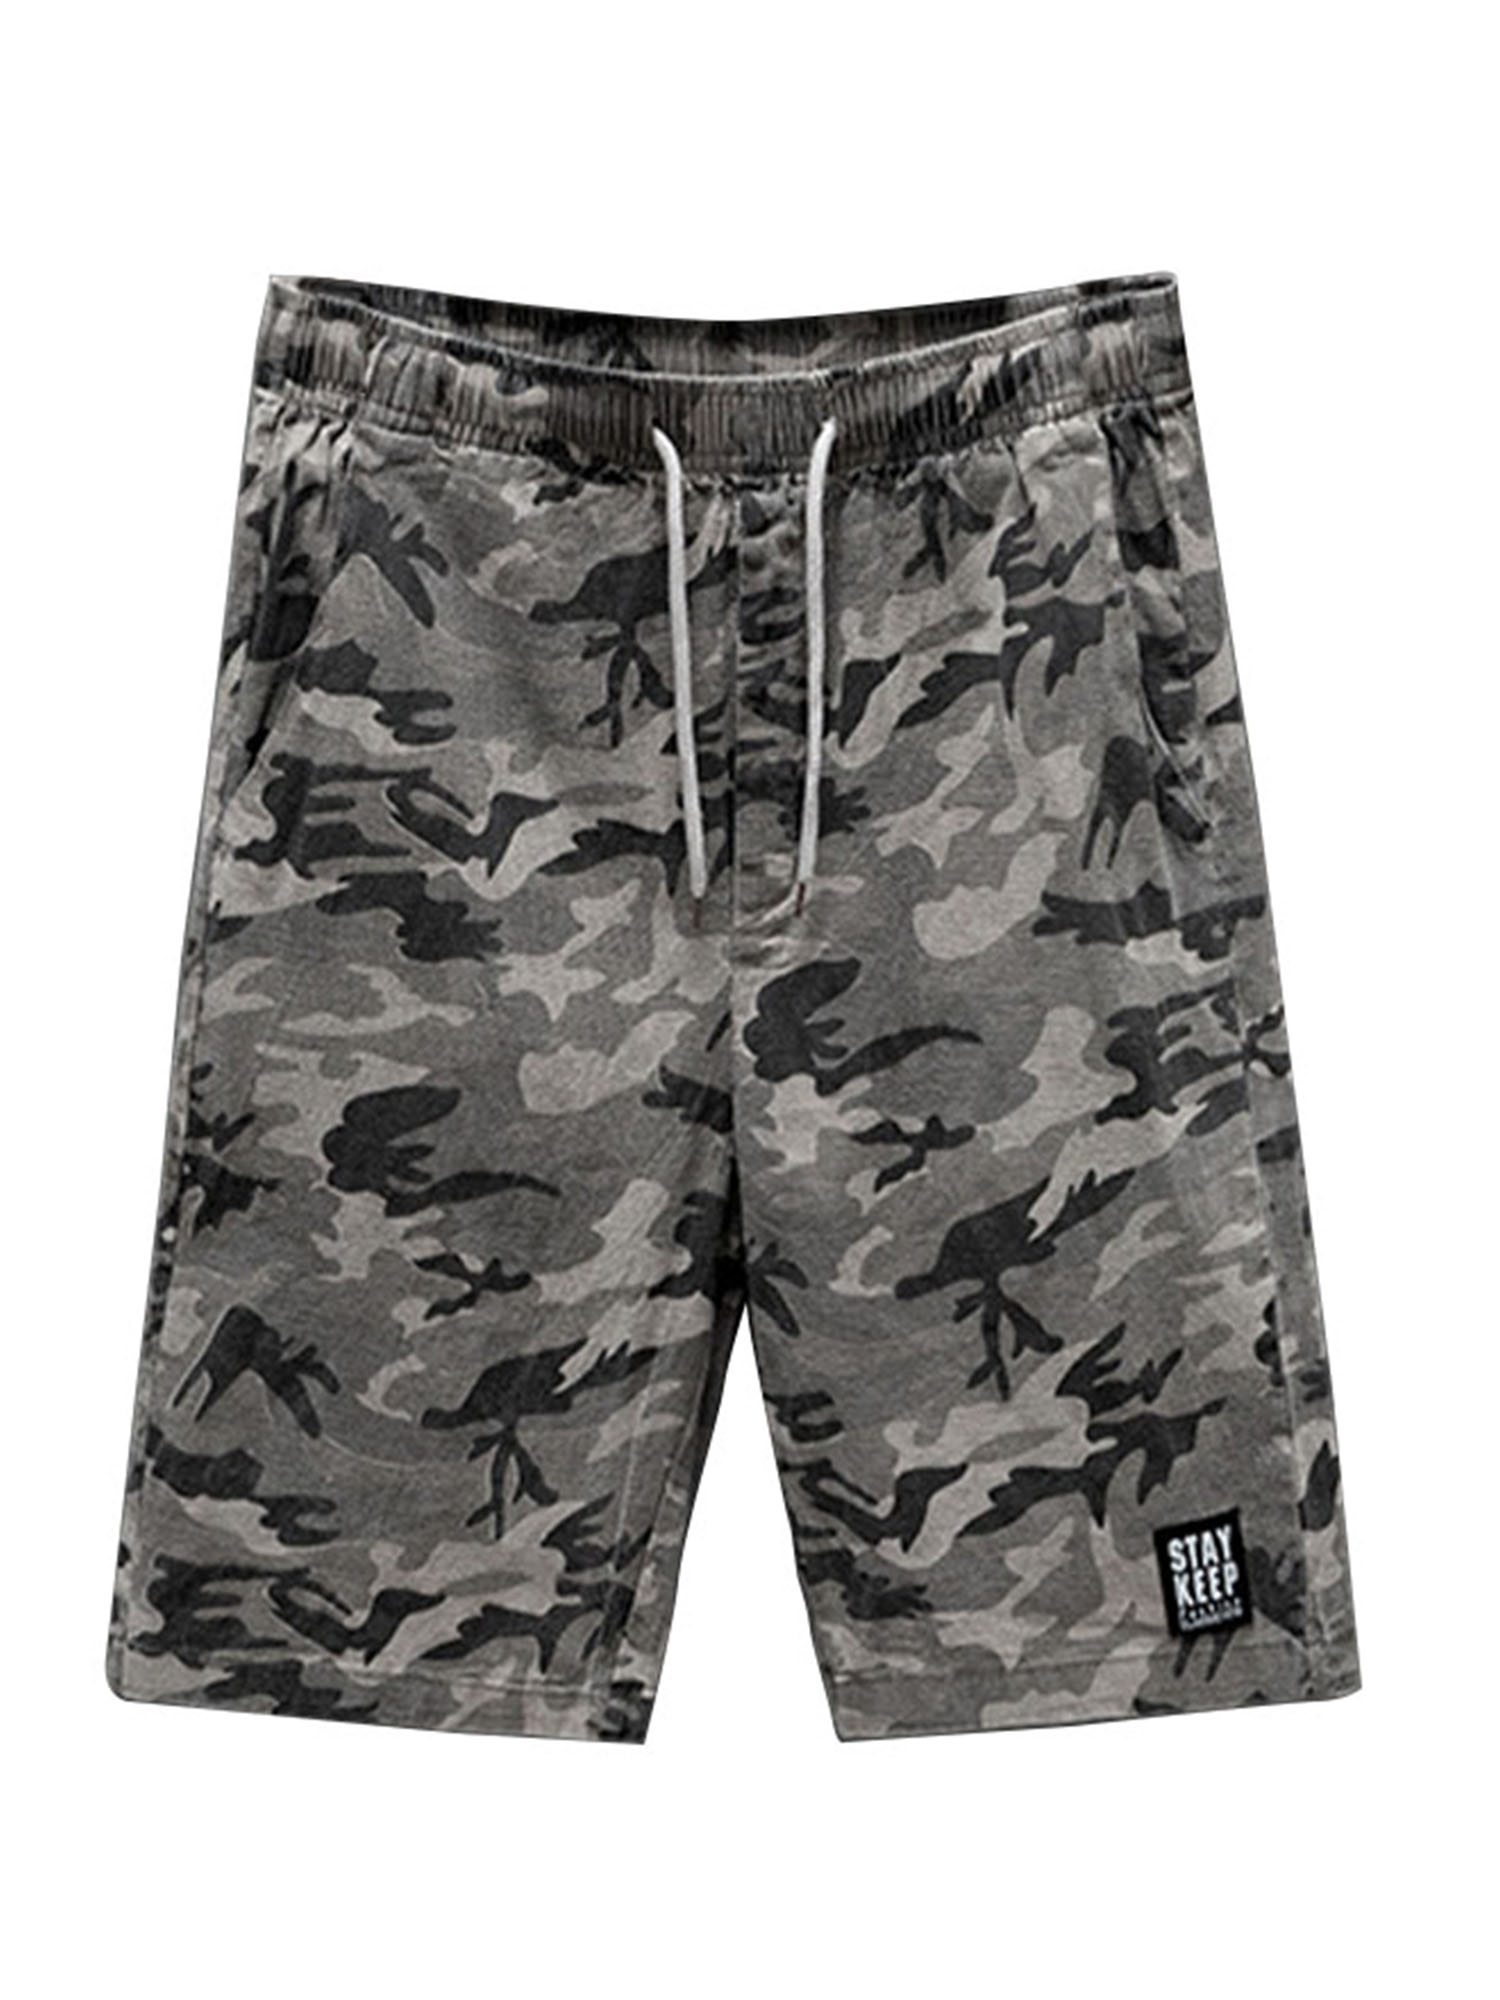 Mens Army Cargo Shorts Combat Casual Camouflage Work Cotton Summer Half Pants